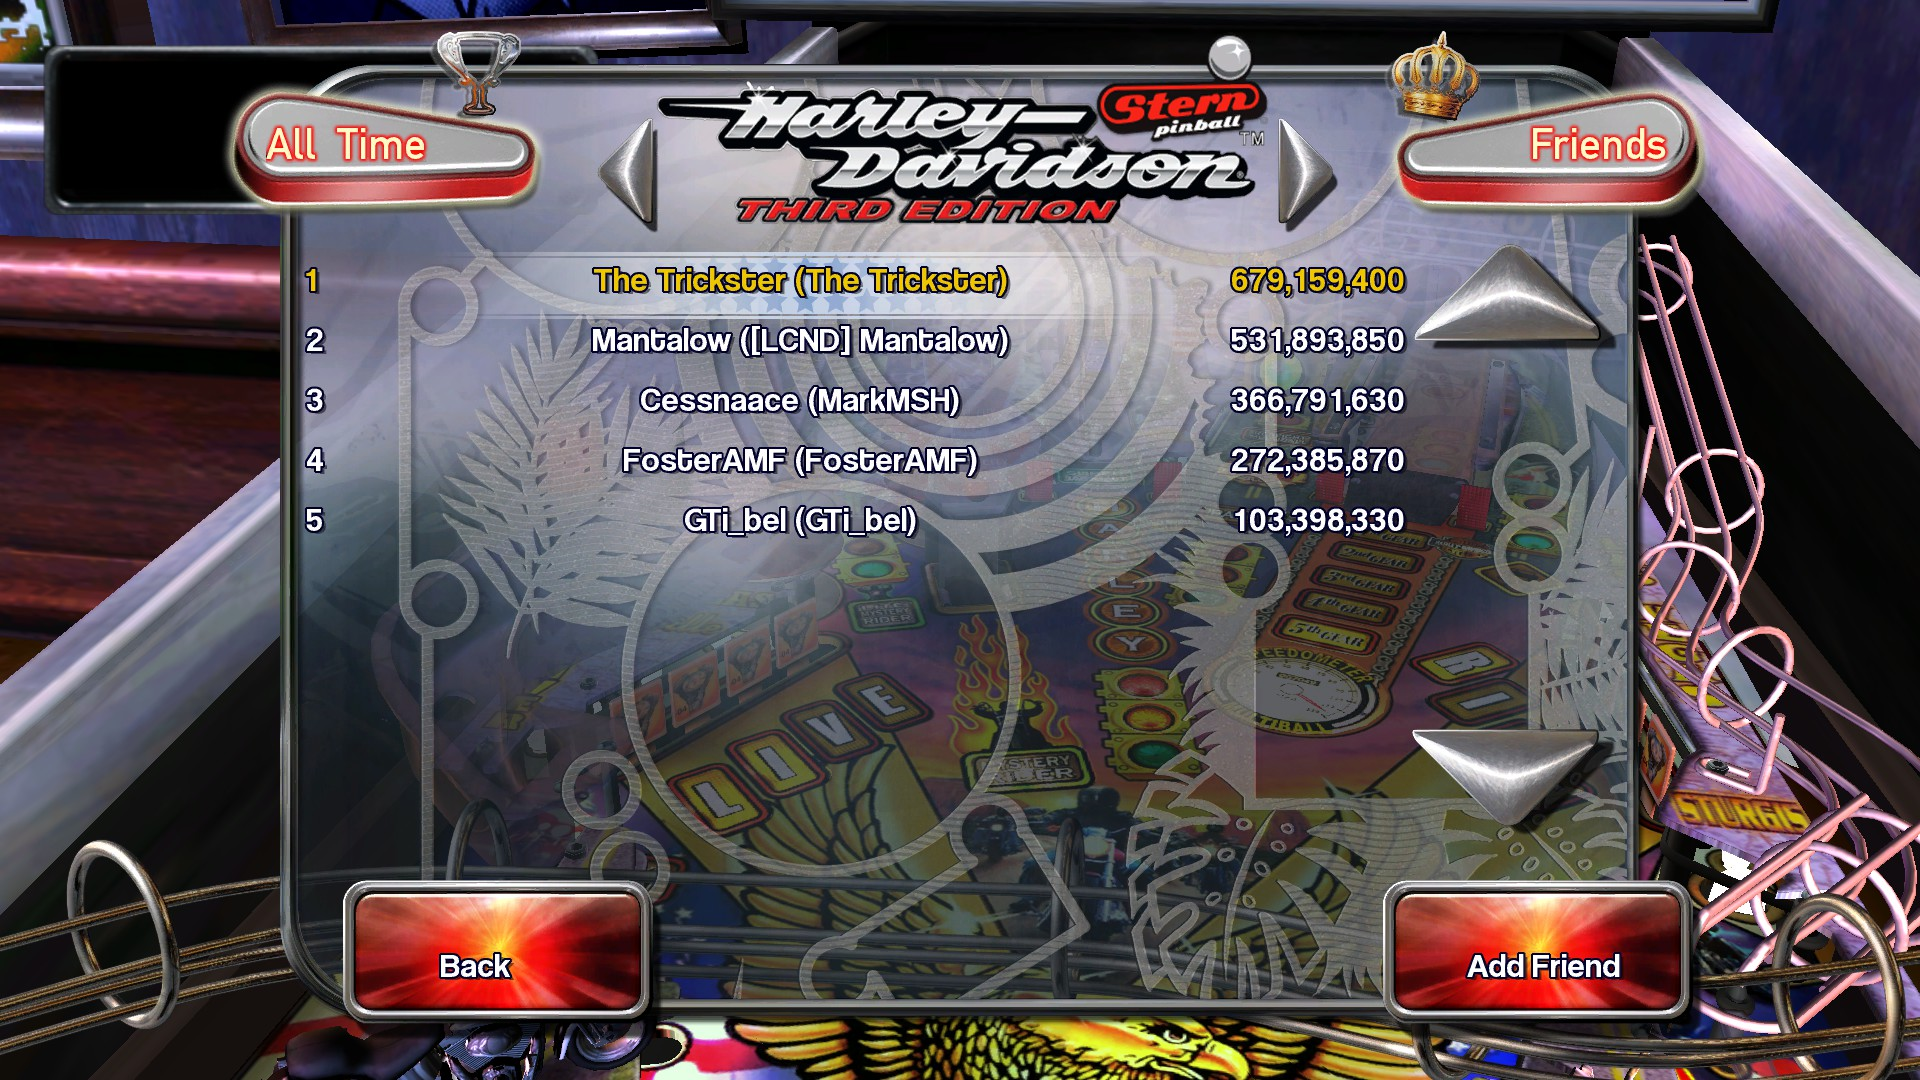 TheTrickster: Pinball Arcade: Harley-Davidson (PC) 679,159,400 points on 2015-12-03 03:37:32